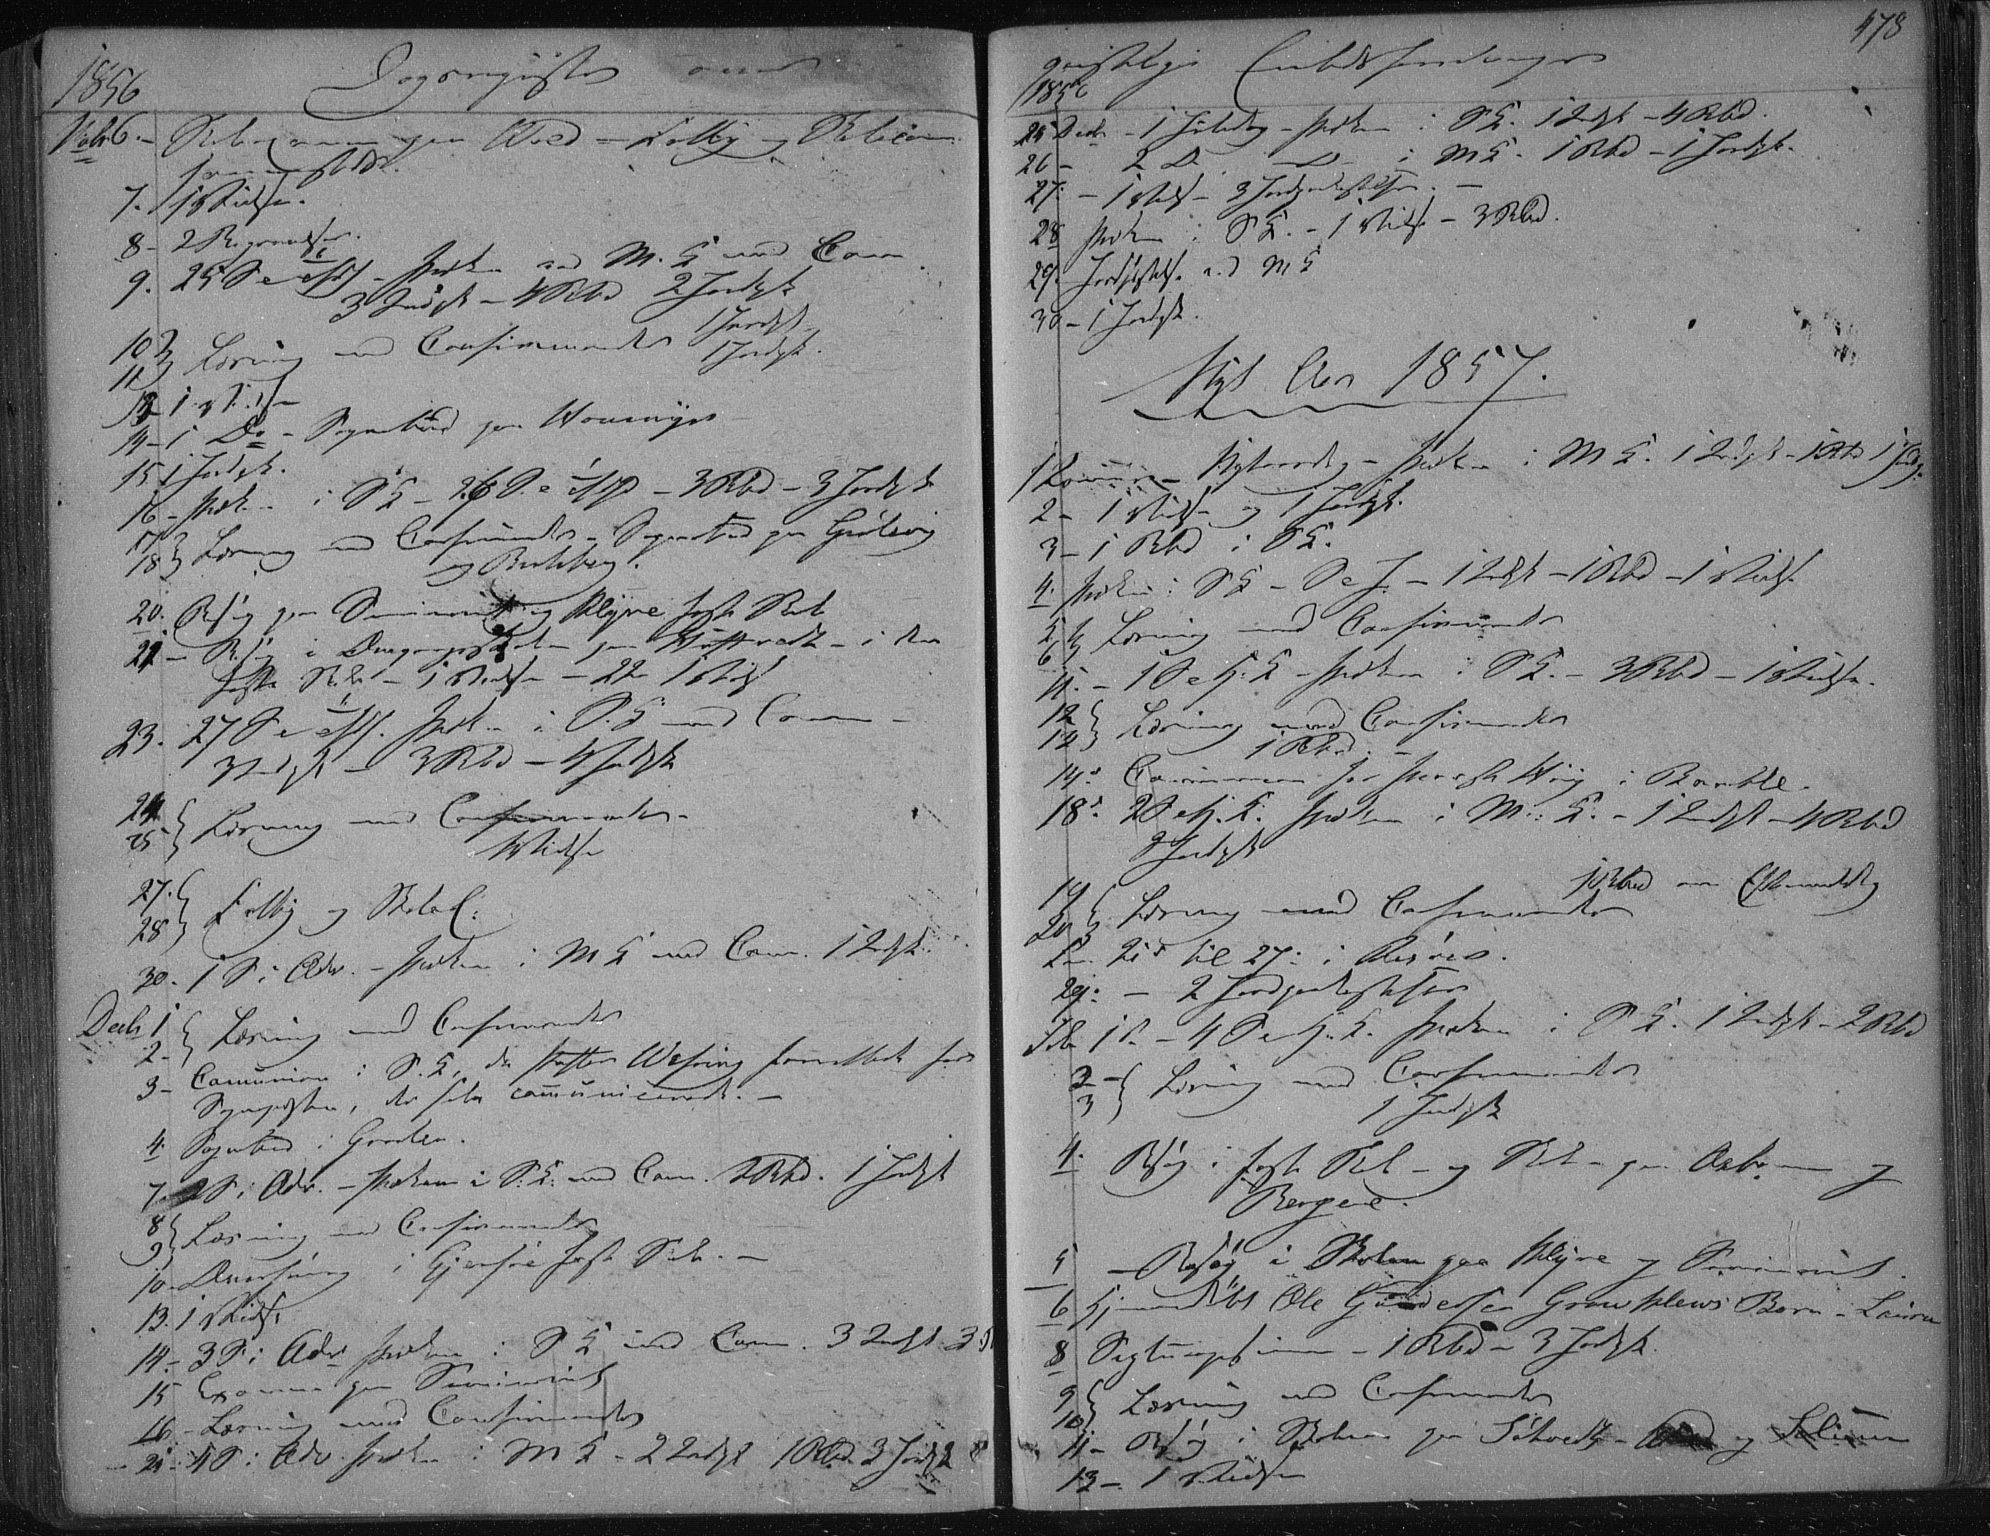 SAKO, Solum kirkebøker, F/Fa/L0007: Parish register (official) no. I 7, 1856-1864, p. 478